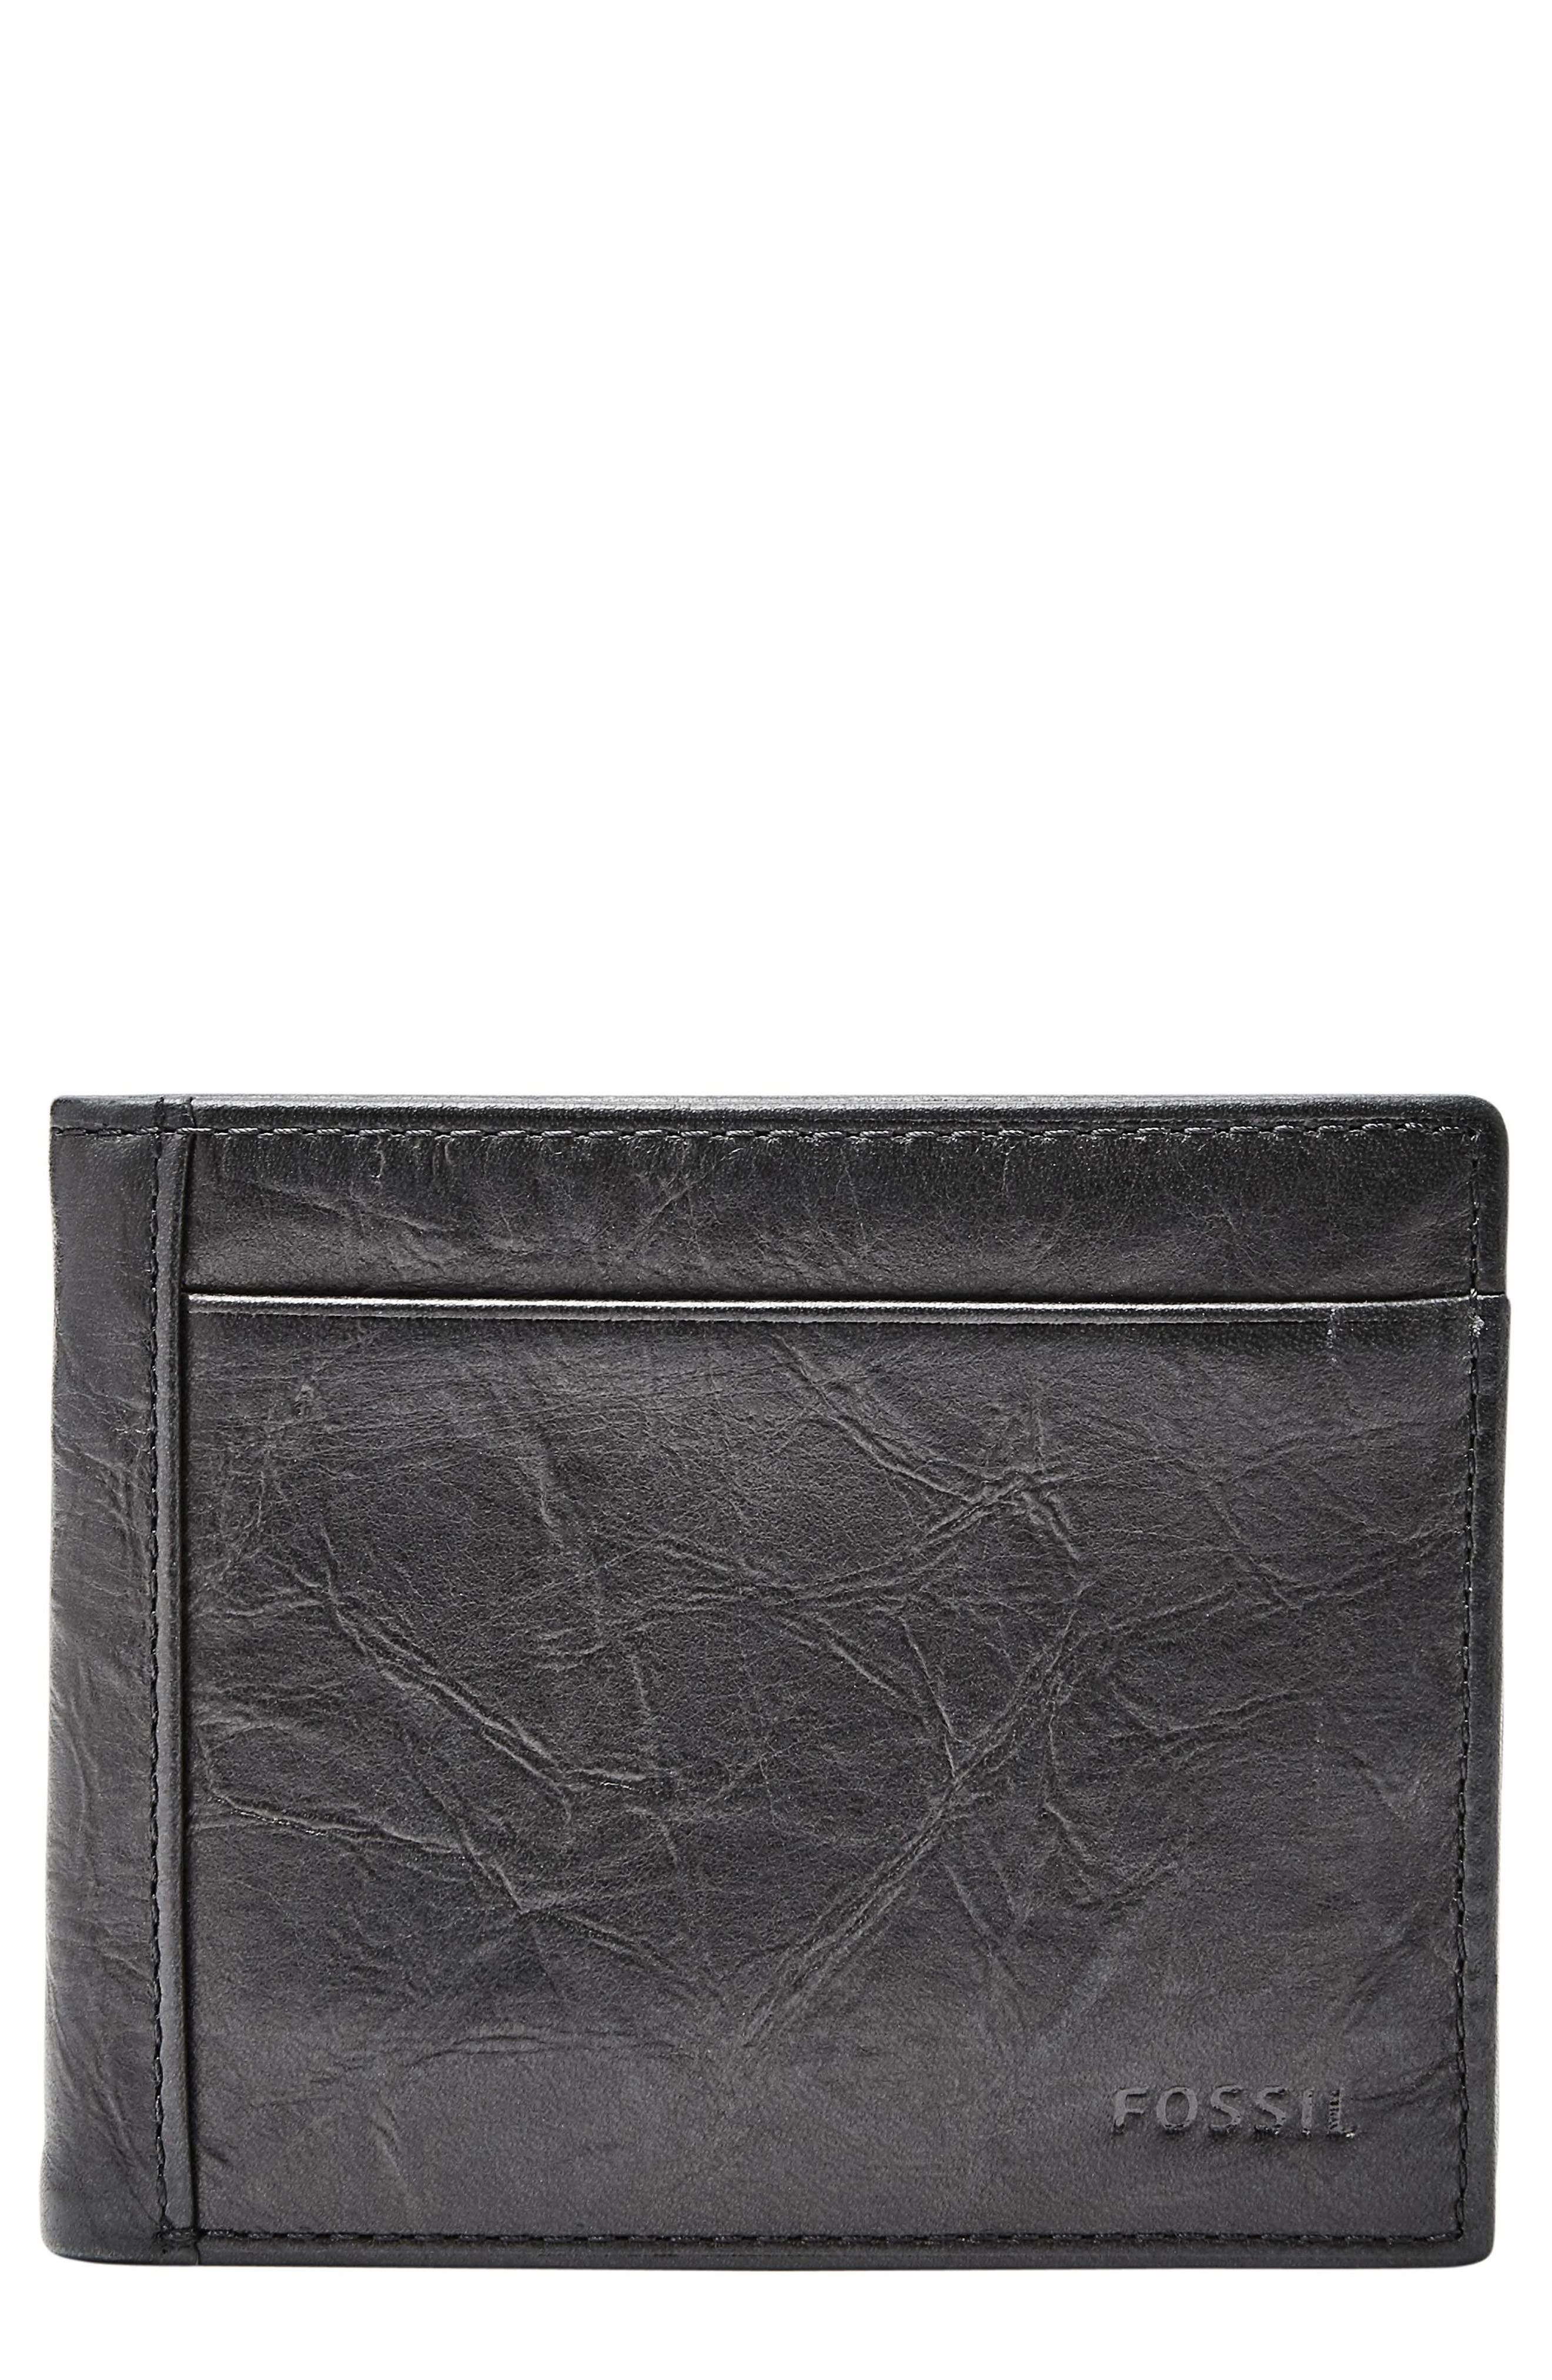 FOSSIL Leather Wallet, Main, color, BLACK